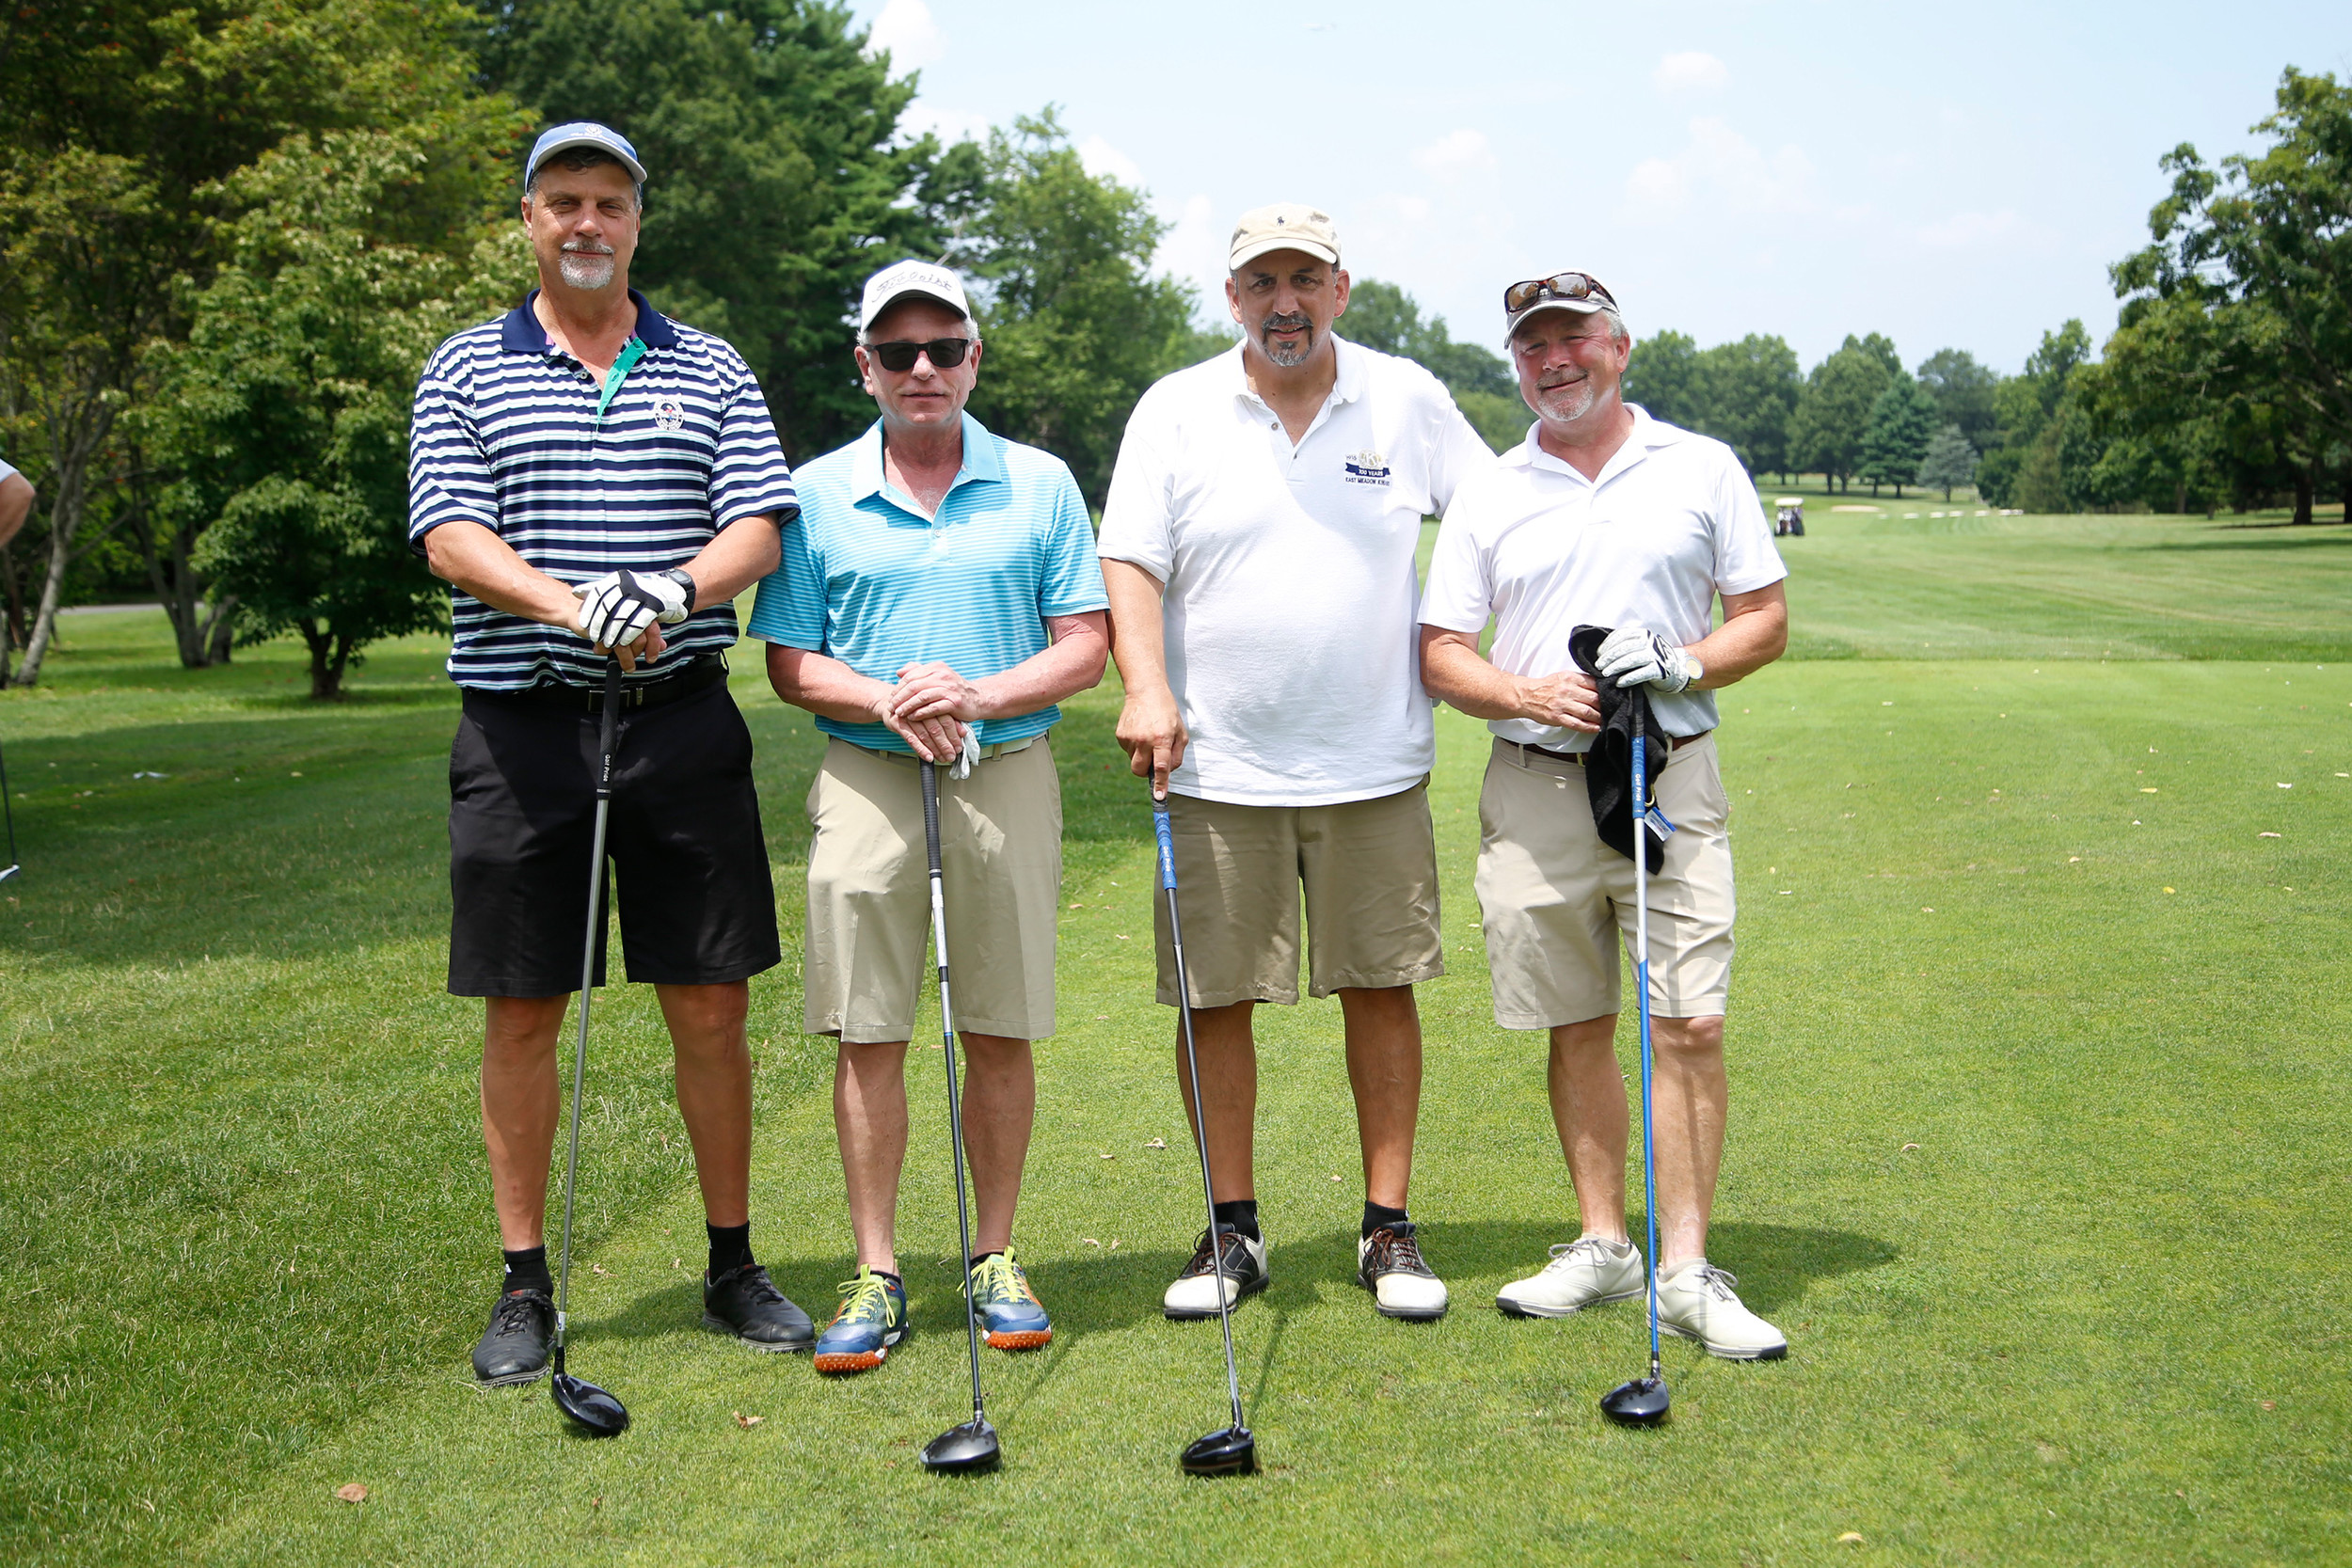 Golfers Peter Mueller, Lane Rubin, fundraiser organizer Alan Beinhacker and Tim King prepped for a long game ahead.